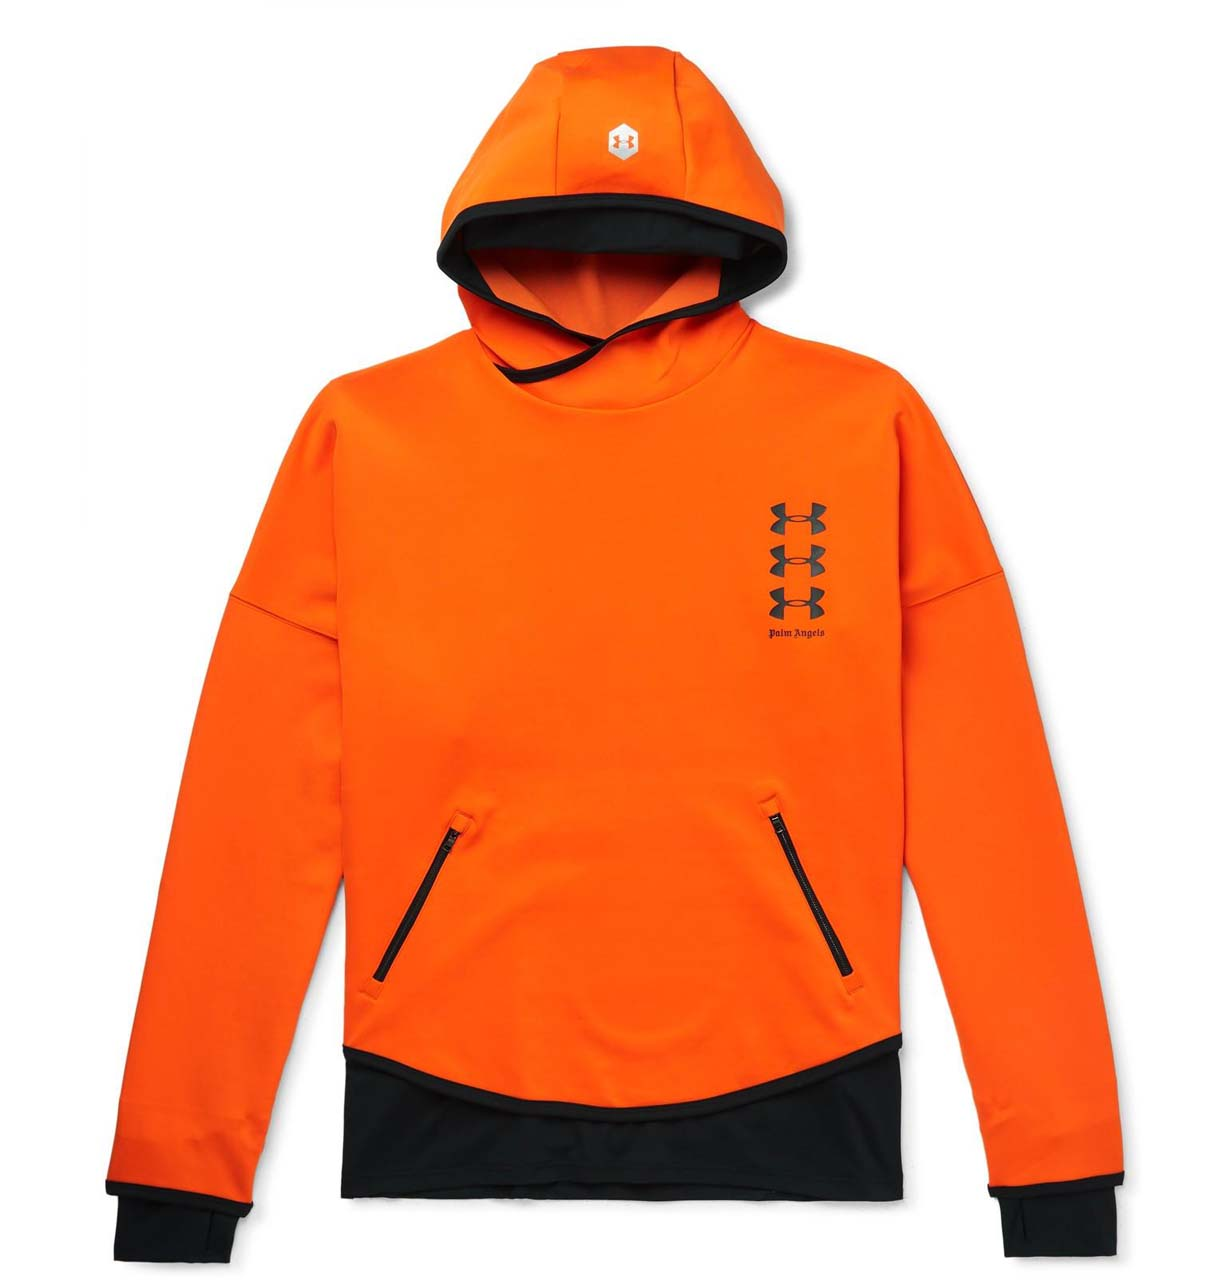 palm-angels-orange-Under-Armour-Oversized-Logo-print-Neoprene-Hoodie_1